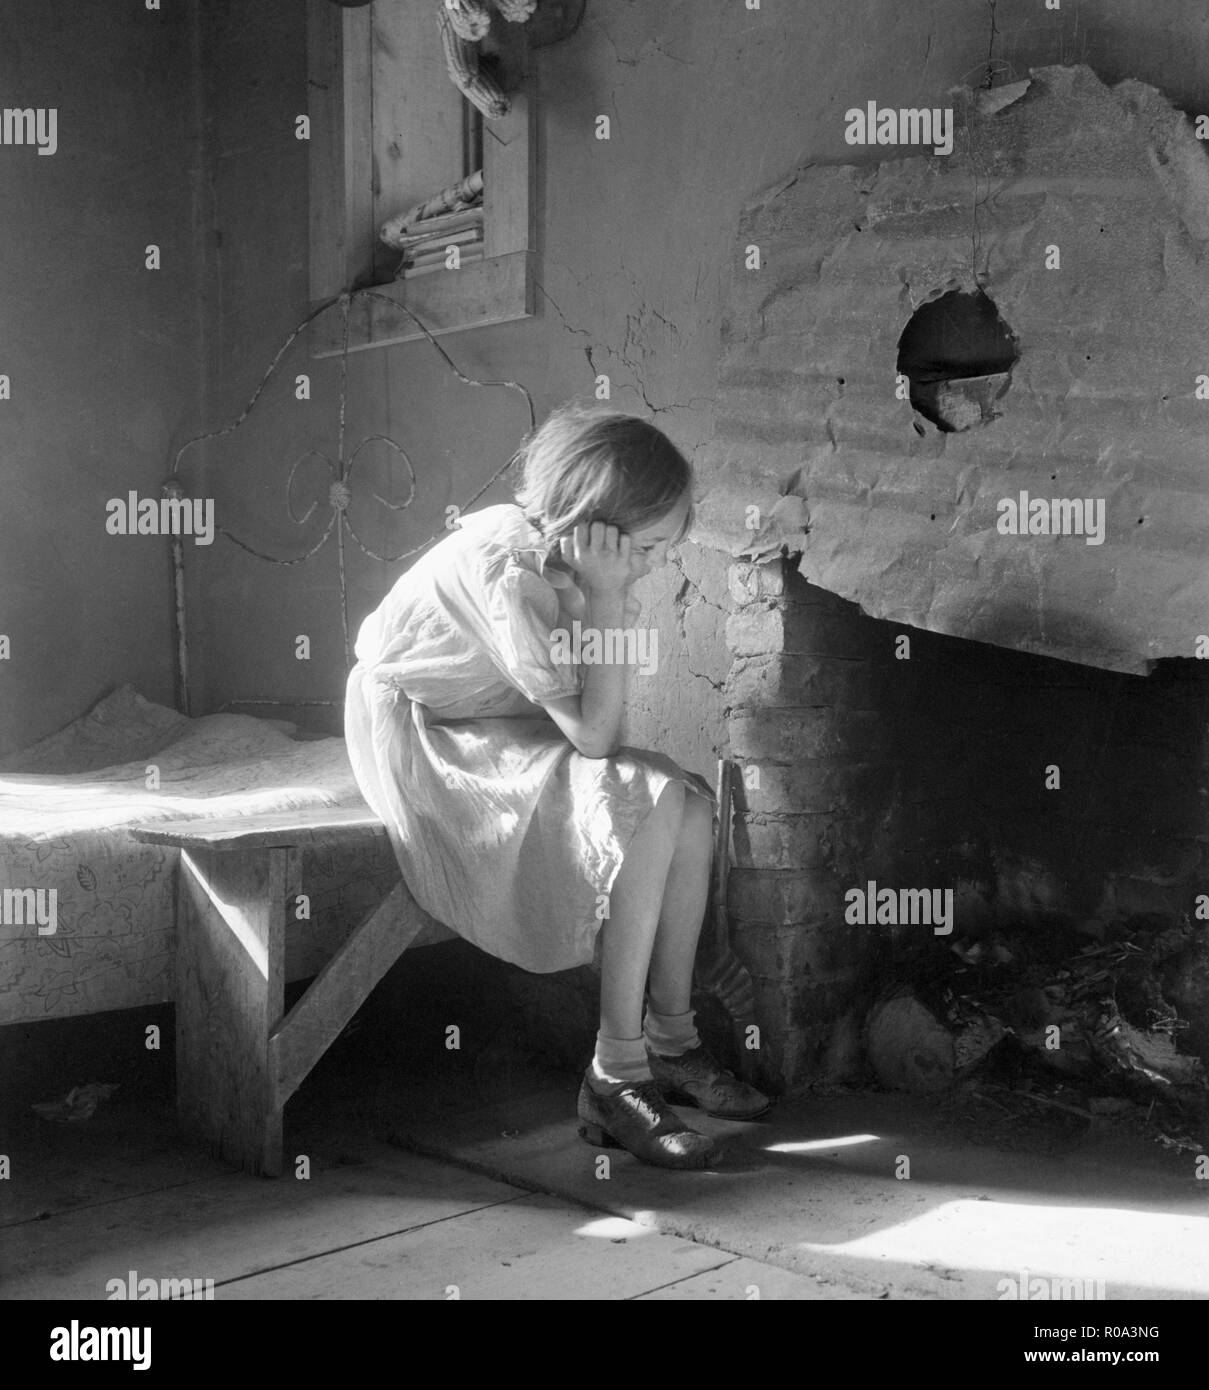 Resettled Farm Child from Taos Junction to Bosque Farms Project, Portrait Sitting near Fireplace, Mills, New Mexico, USA, Dorothea Lange, Farm Security Administration, December 1935 - Stock Image